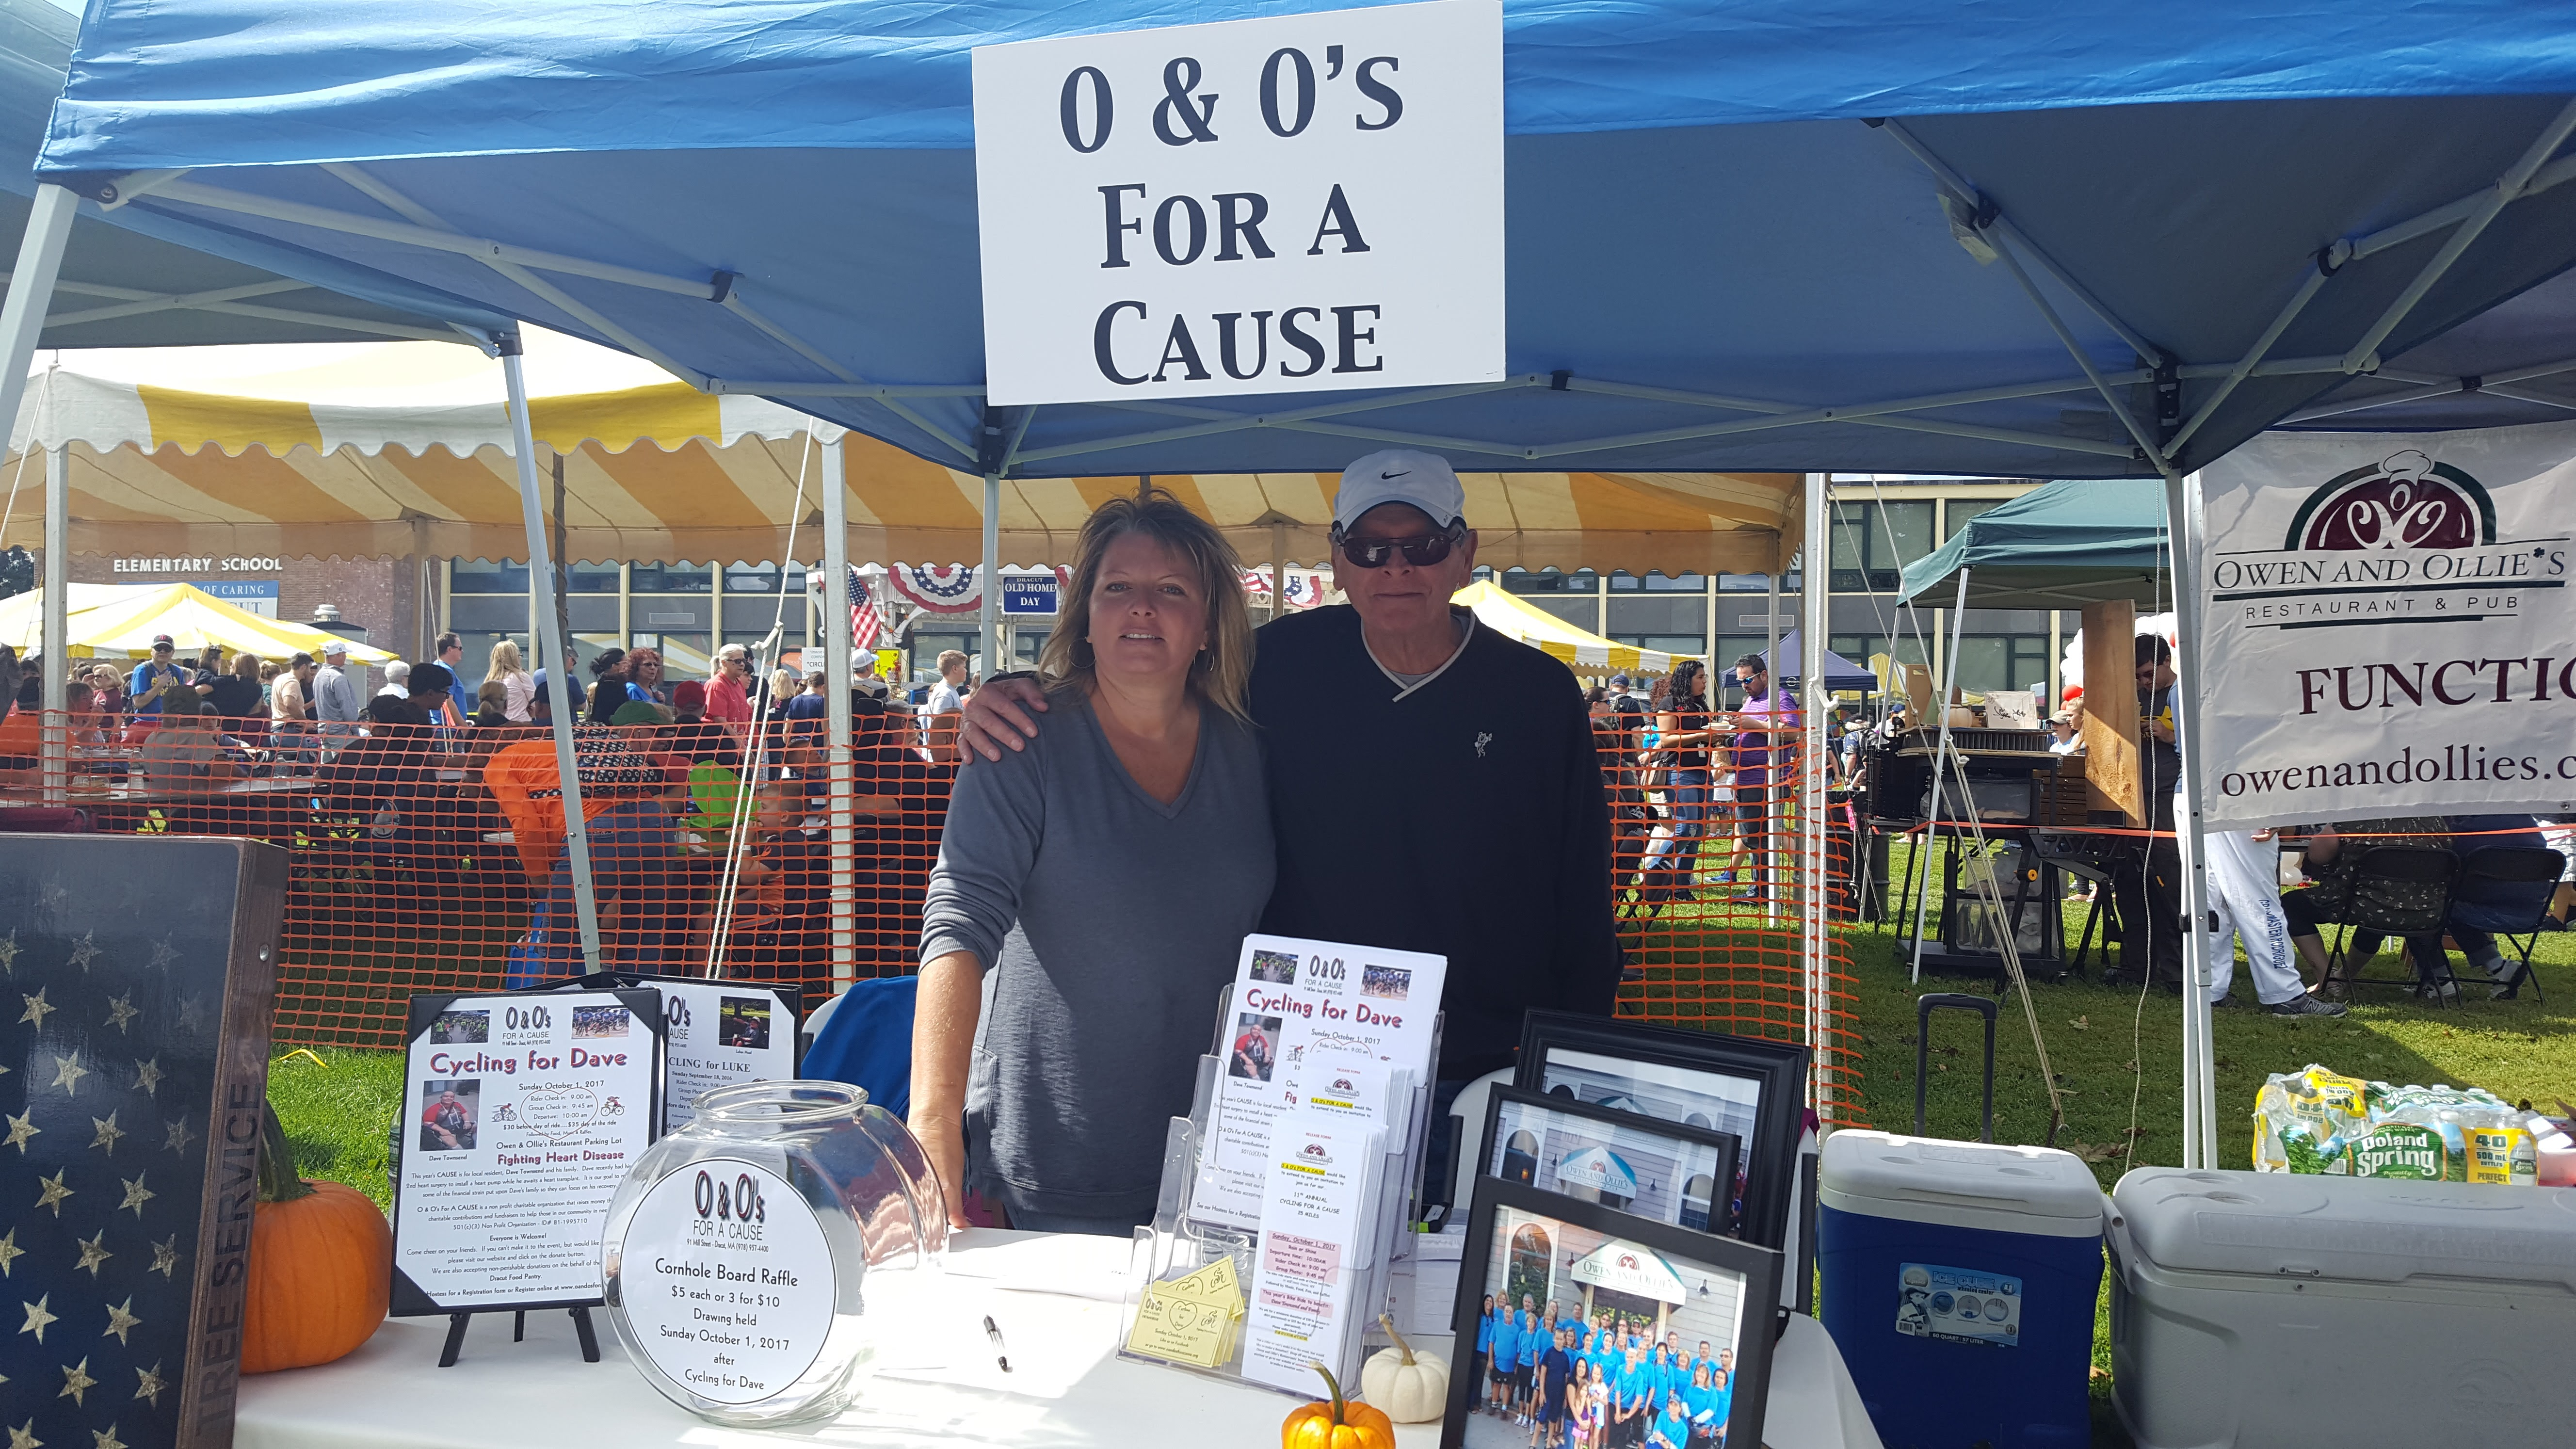 O & O's For A Cause